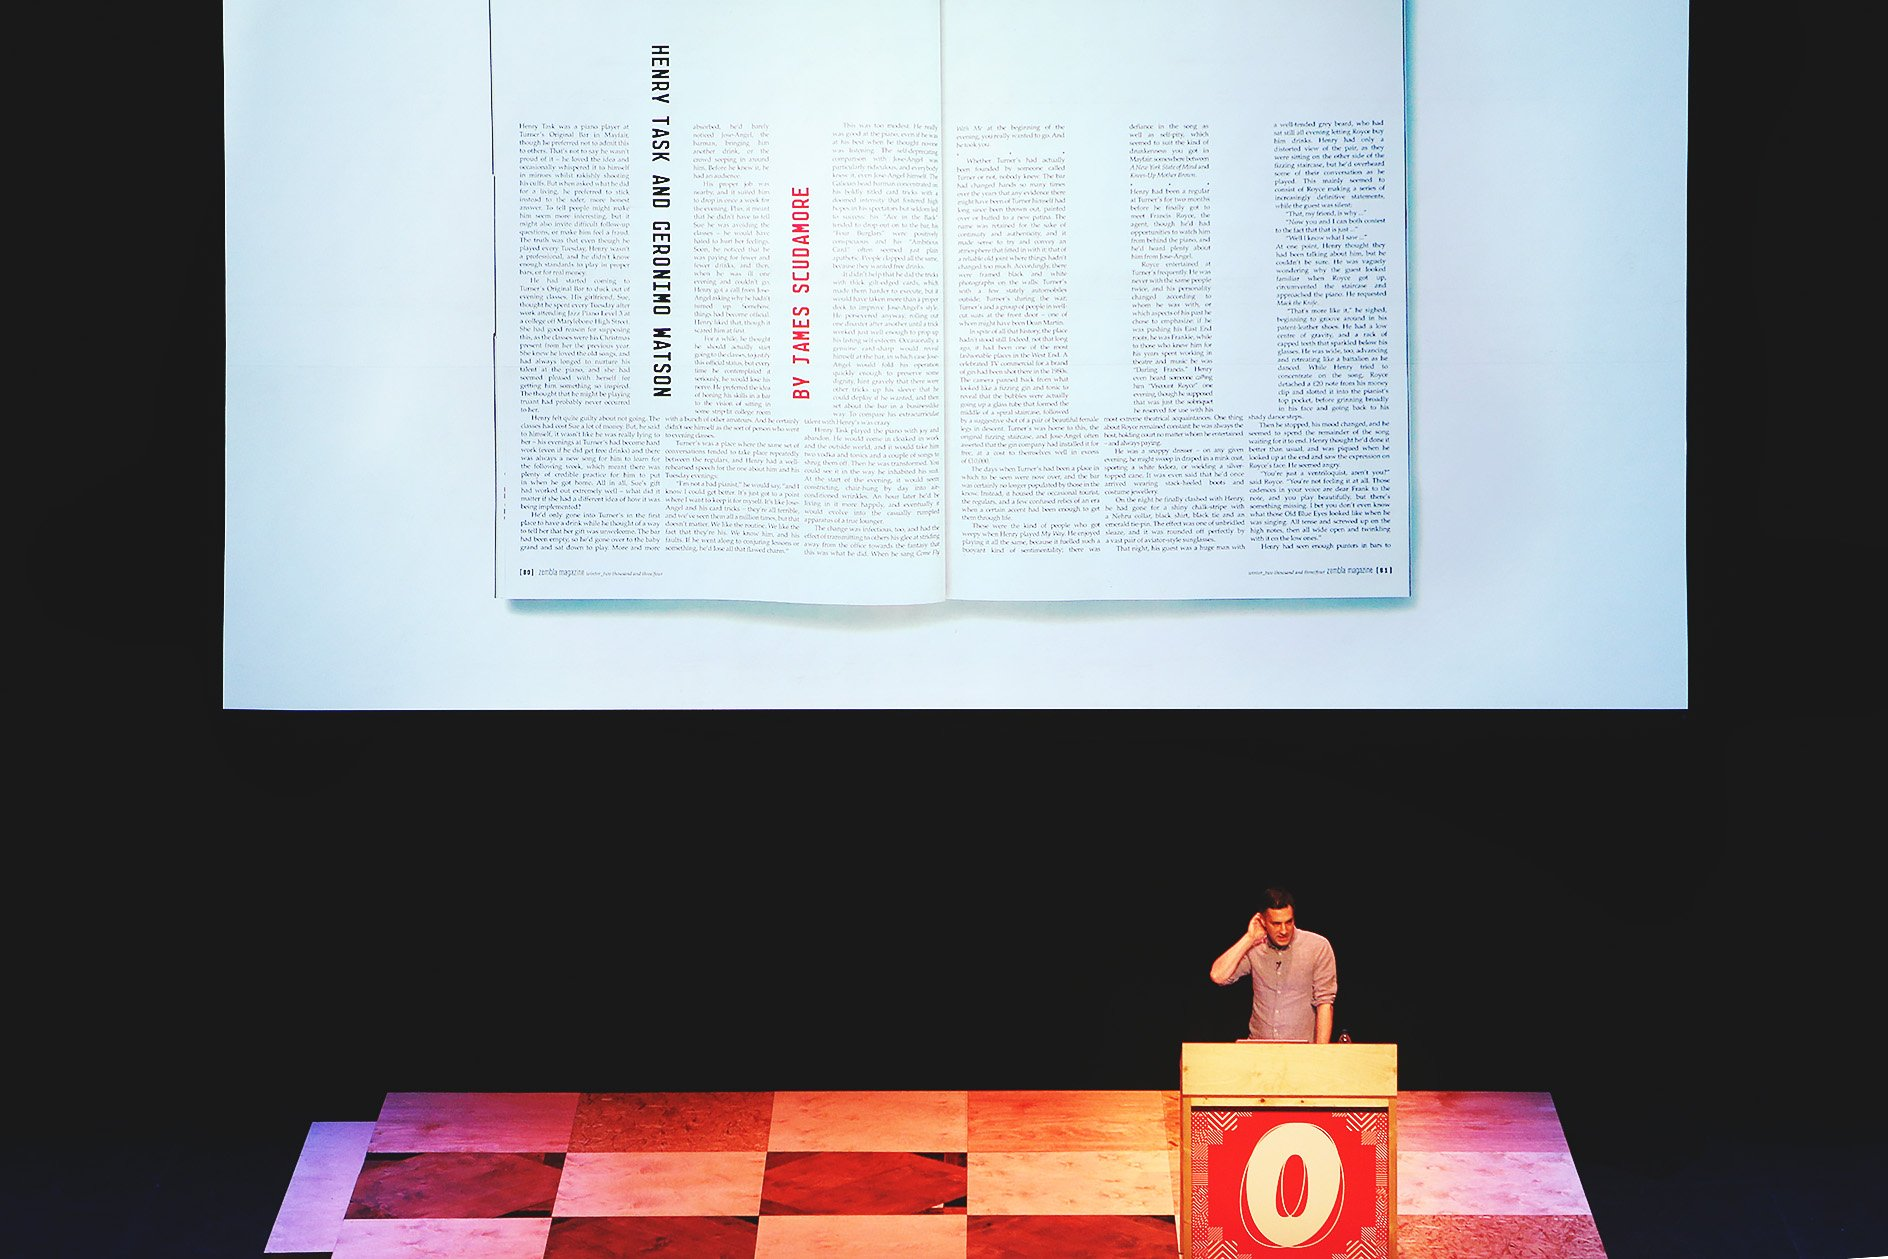 Matt Willey at OFFSET 2015 – Typography playfulness